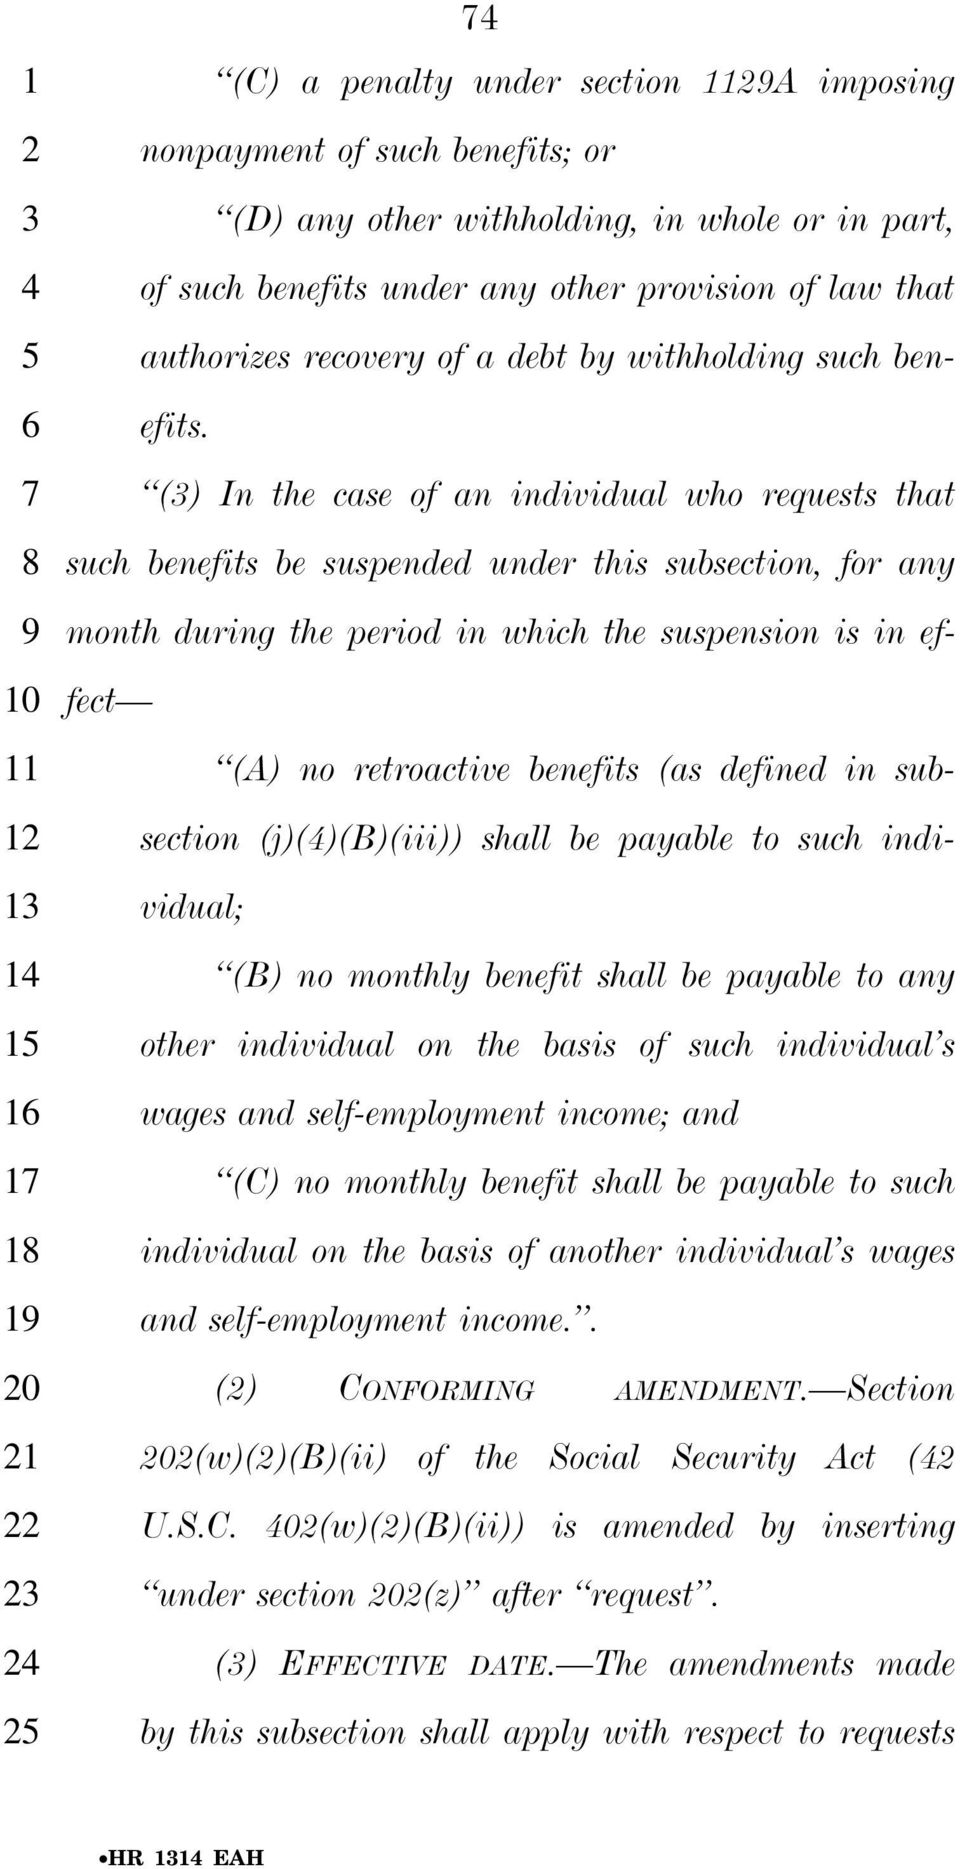 () In the case of an individual who requests that such benefits be suspended under this subsection, for any month during the period in which the suspension is in effect (A) no retroactive benefits